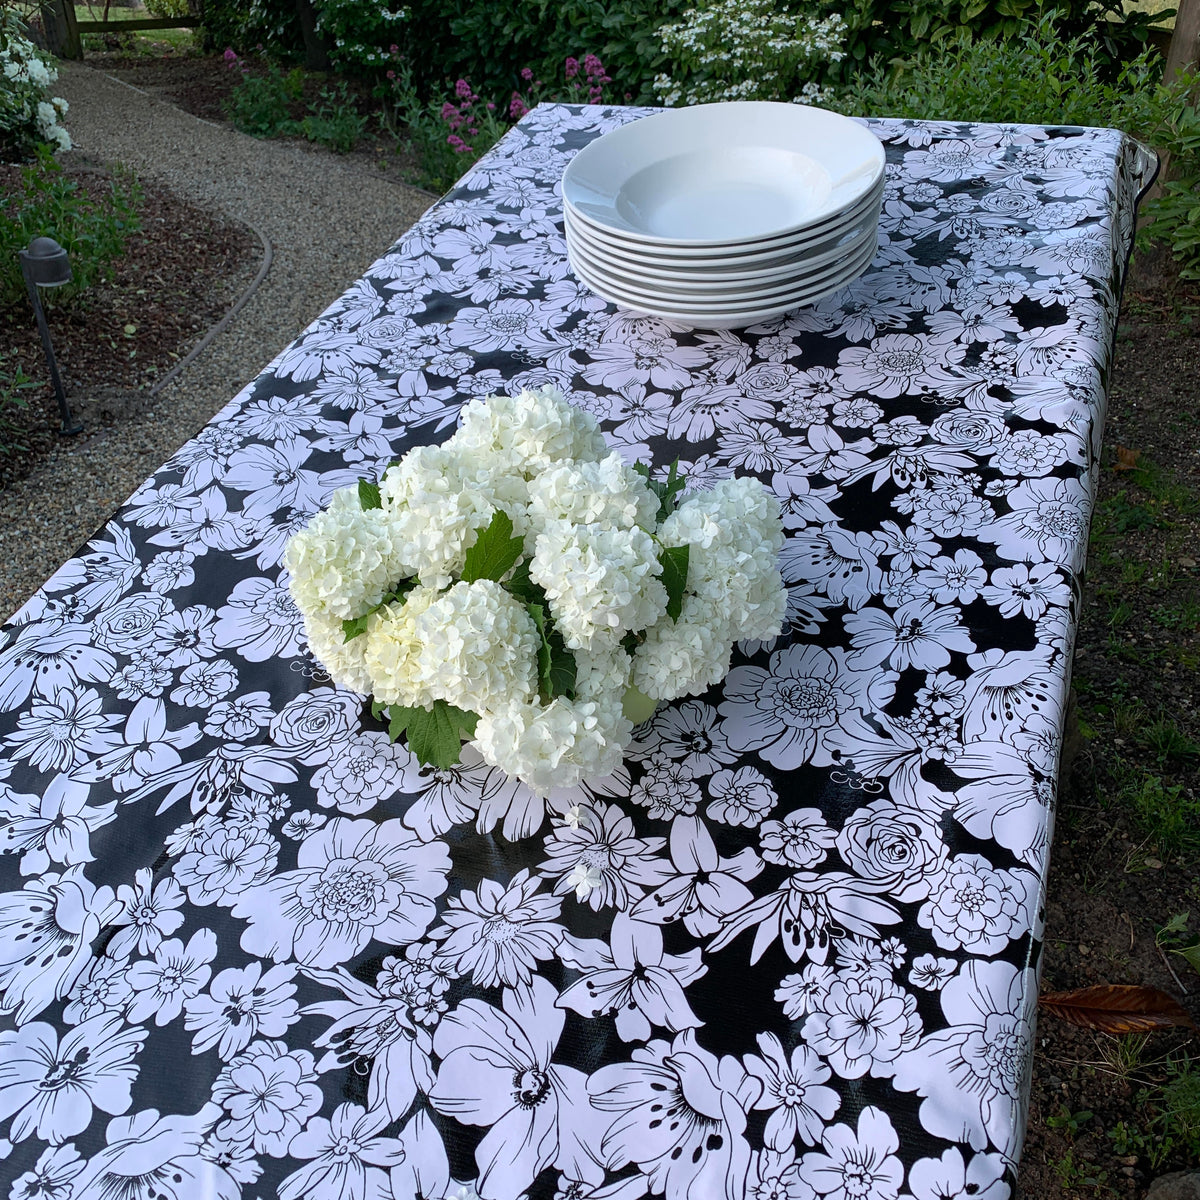 Oilcloth Tablecloth – Wildflowers in Black & White